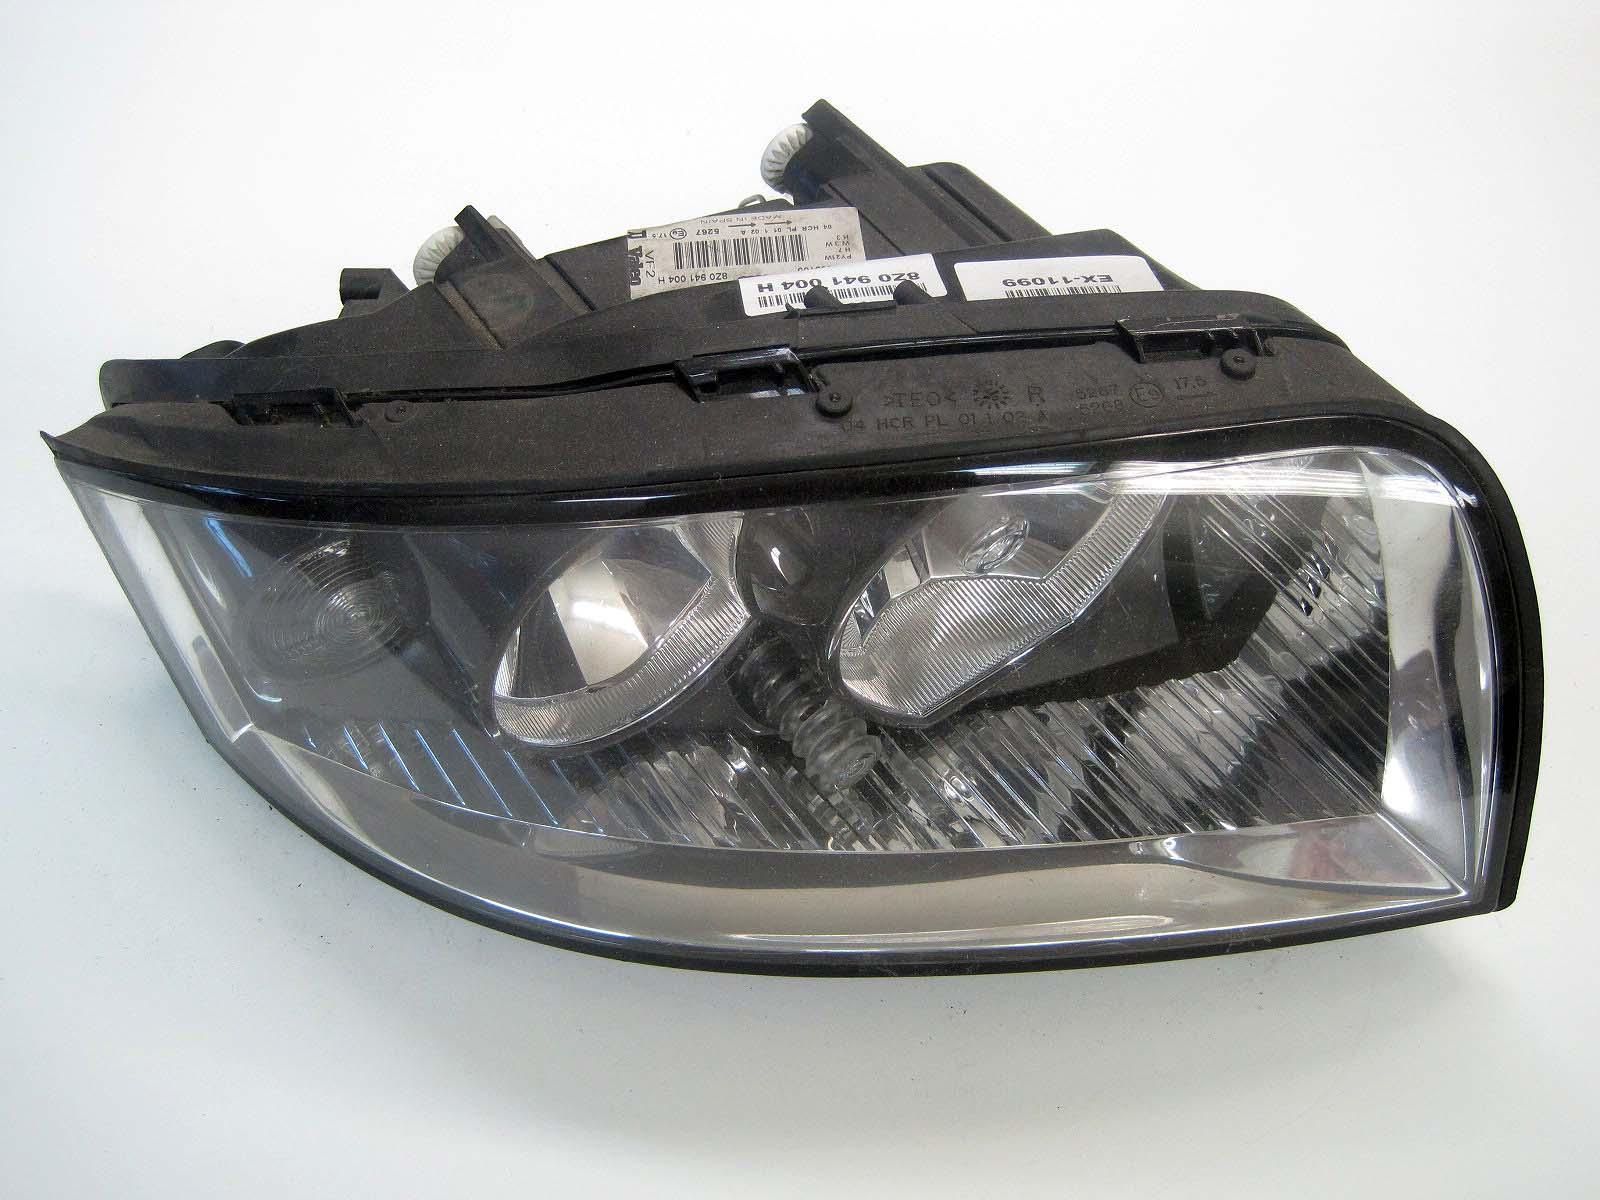 Headlight used 8Z0941004H prüfen